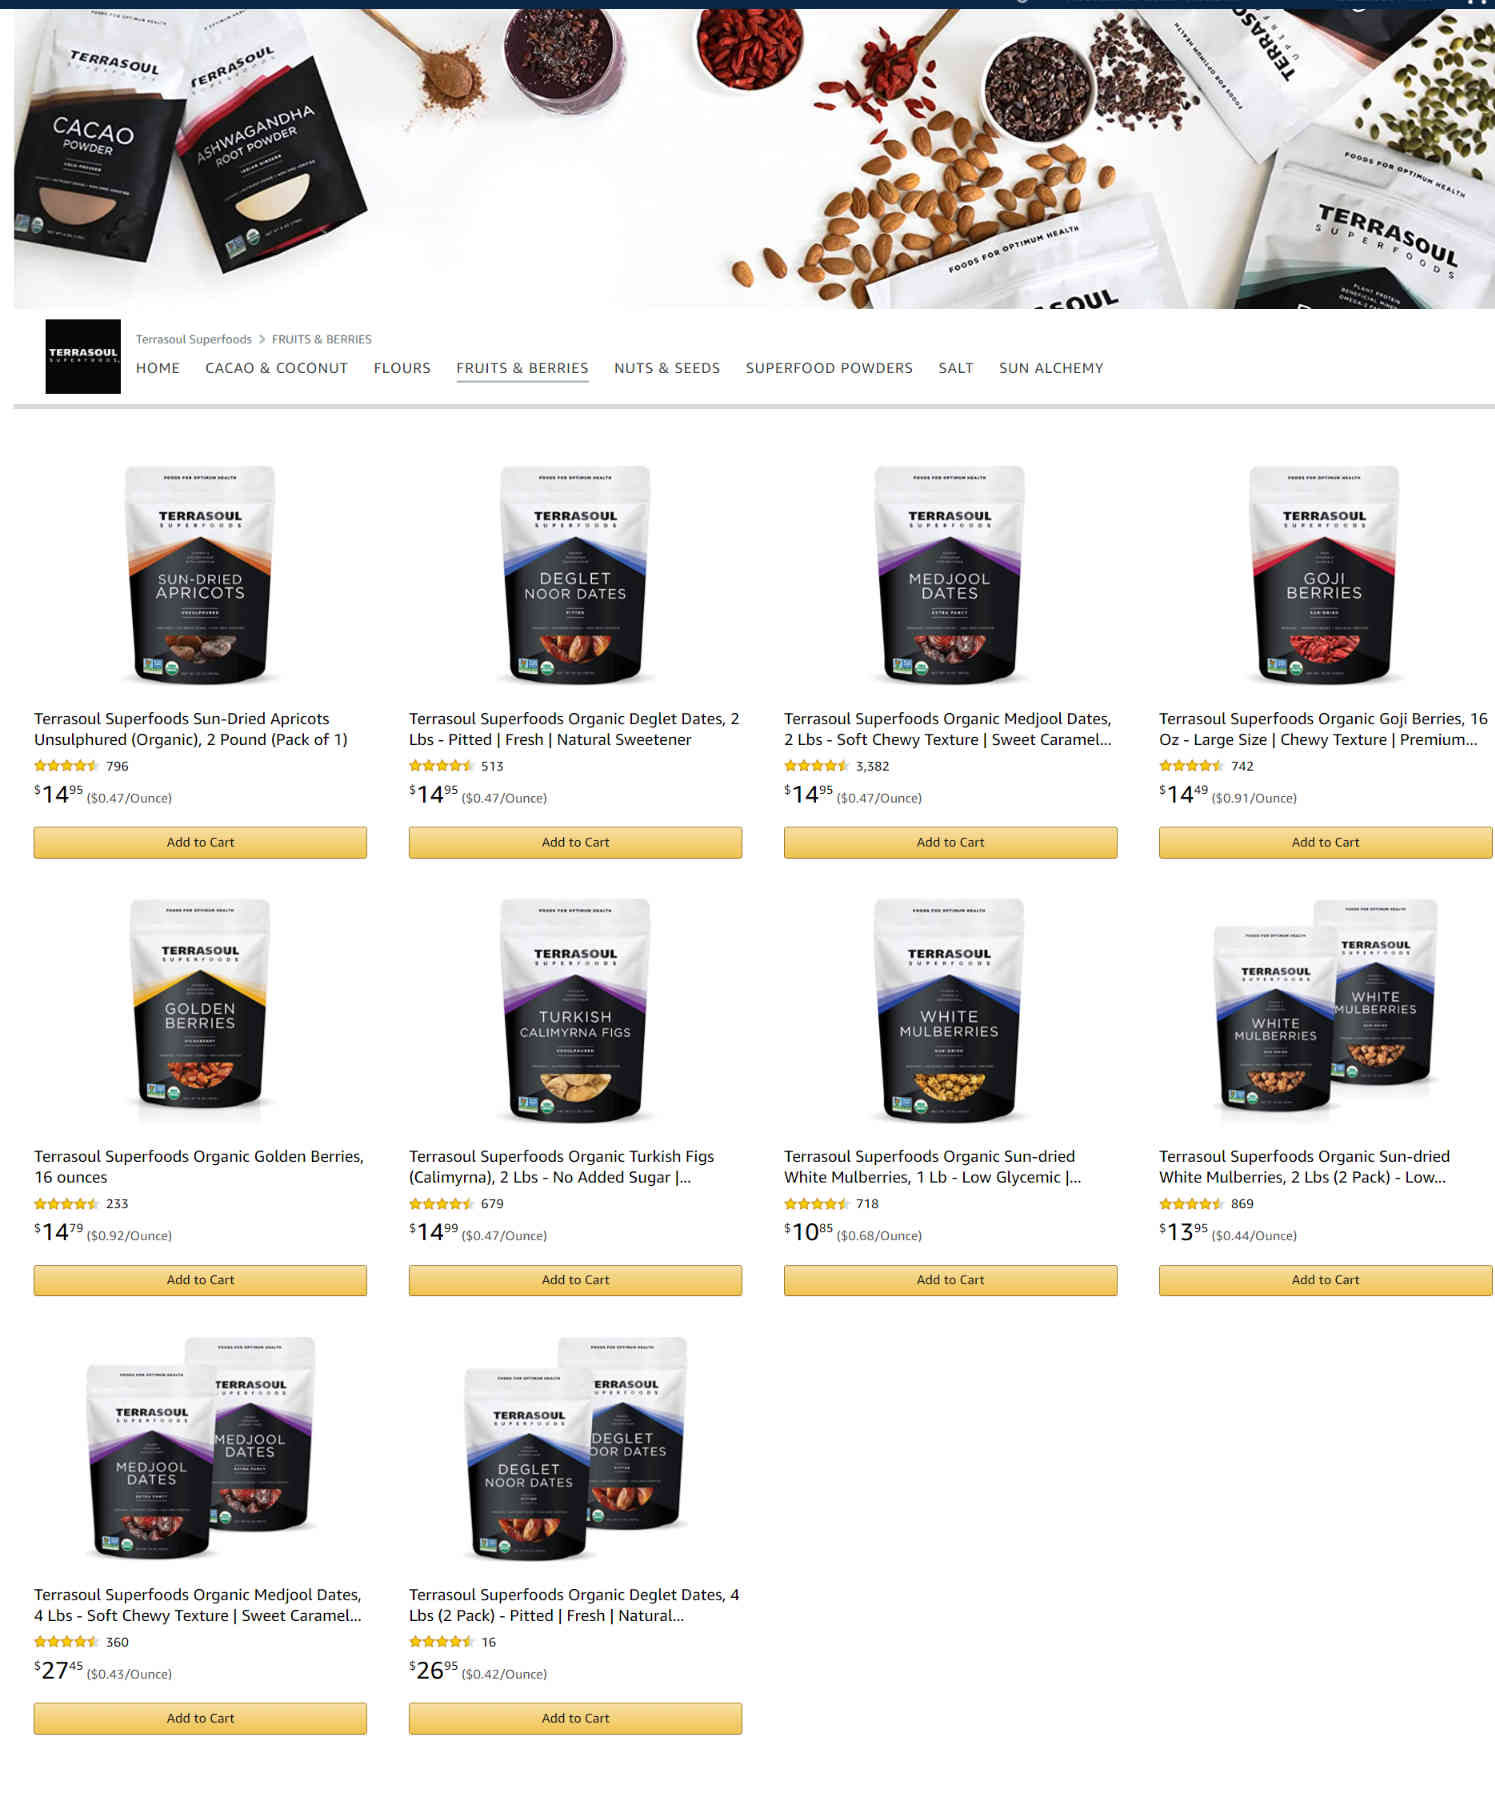 Amazon Storefront Example of TerraSoul's Fruits & Berries Product Page